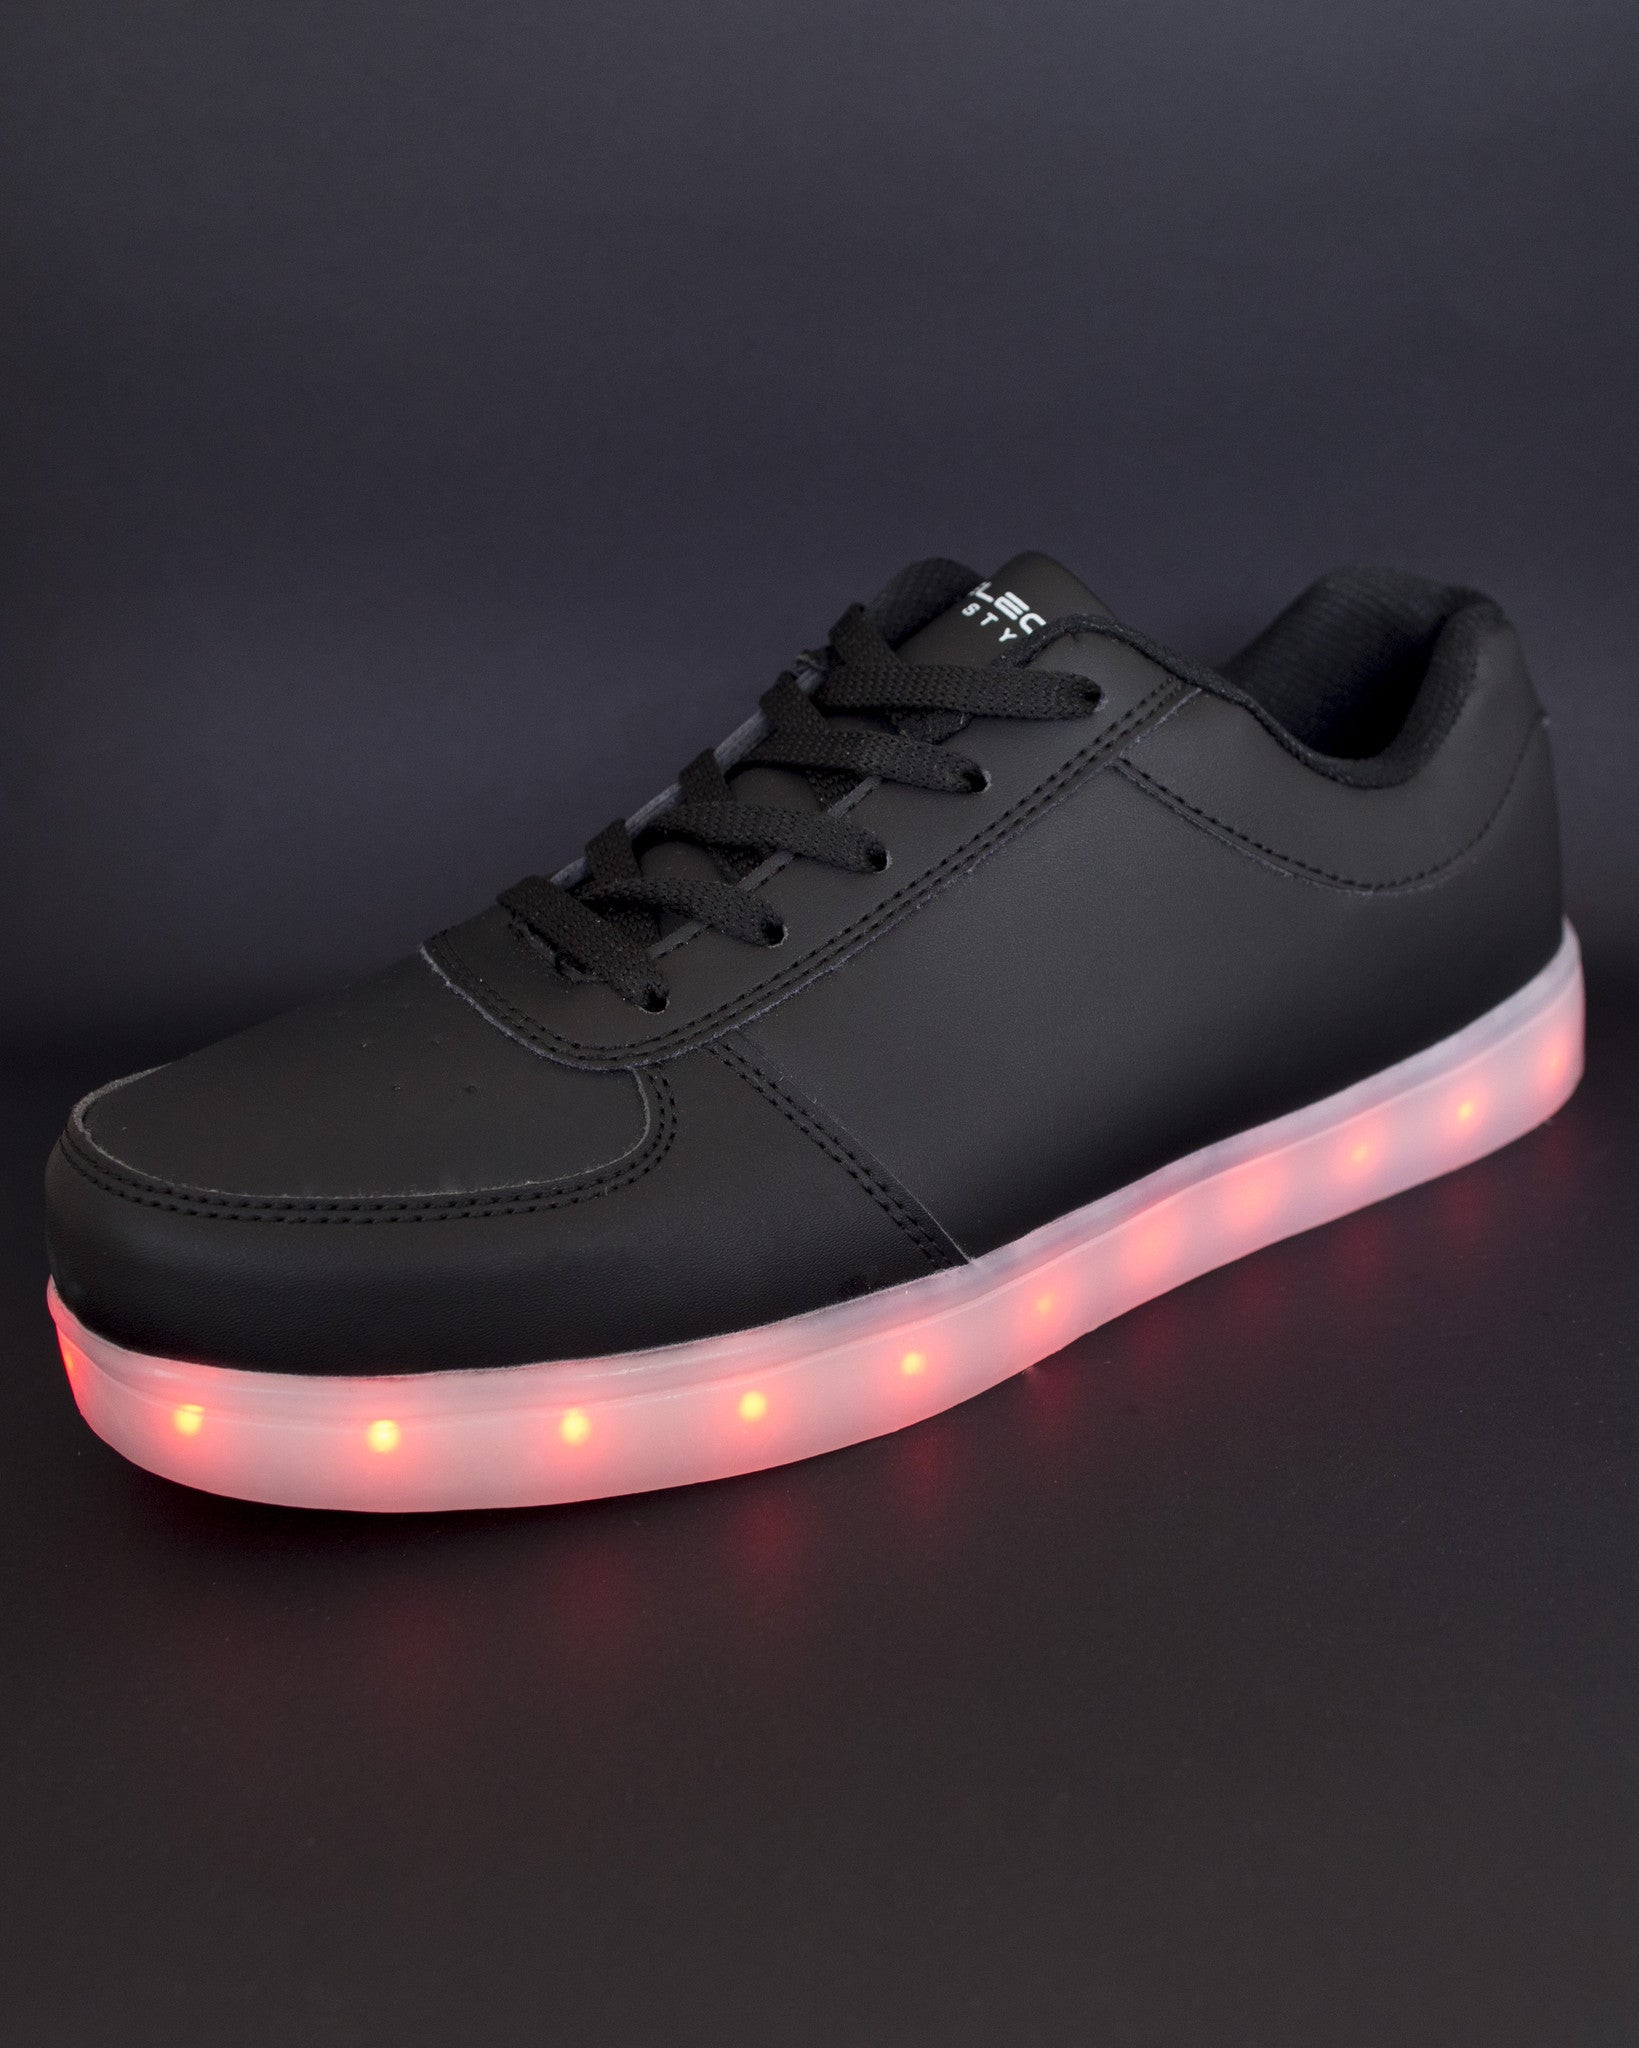 Light Up Shoes - All Black - Electric Styles | World's Number 1 Light Up Shoe Store - {product_type}} -  - 5